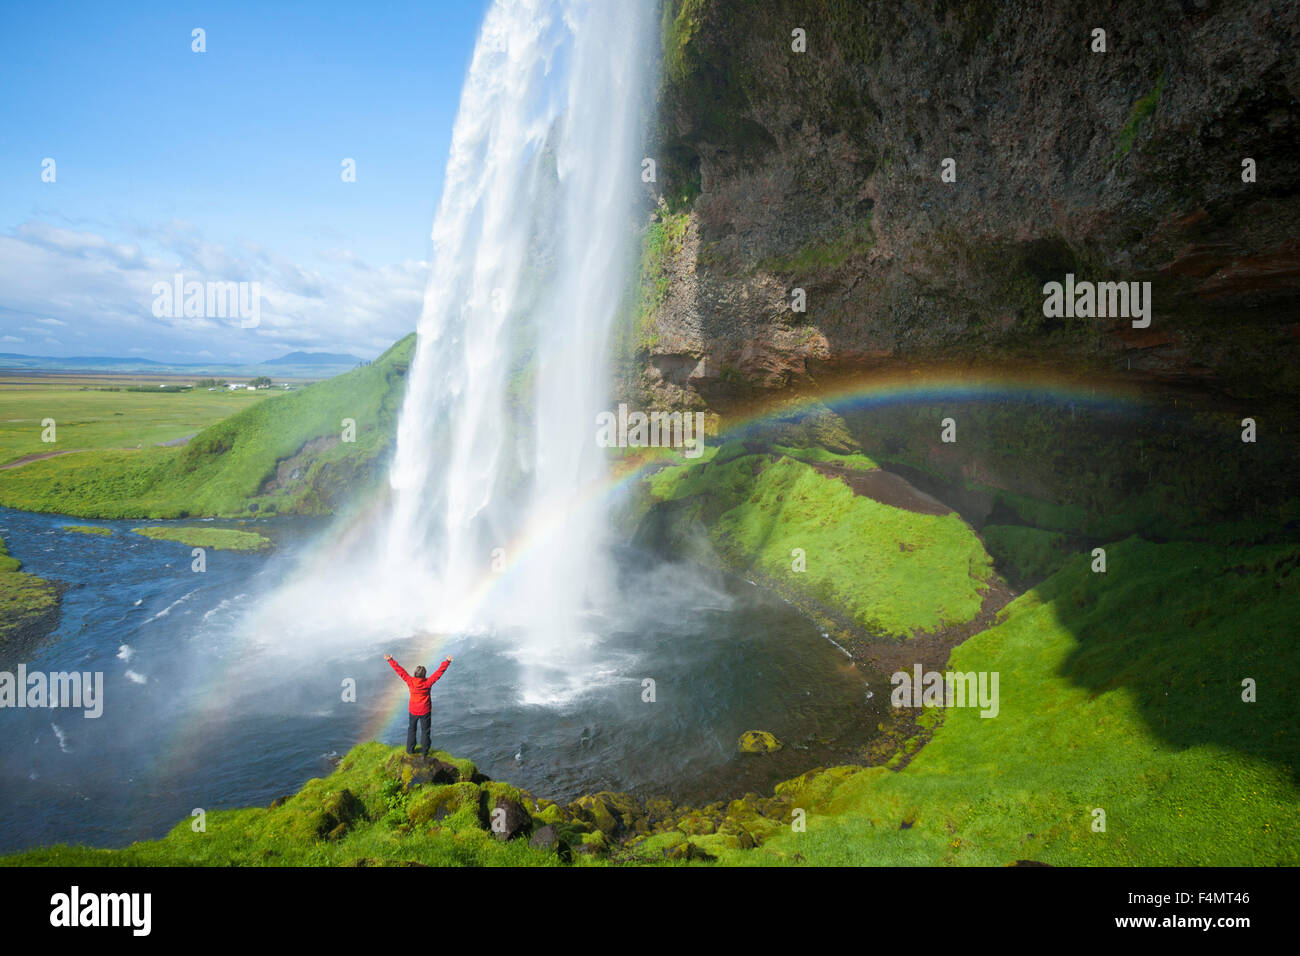 Person and rainbow beneath 60m-high Seljalandsfoss waterfall, Sudhurland, Iceland. Stock Photo